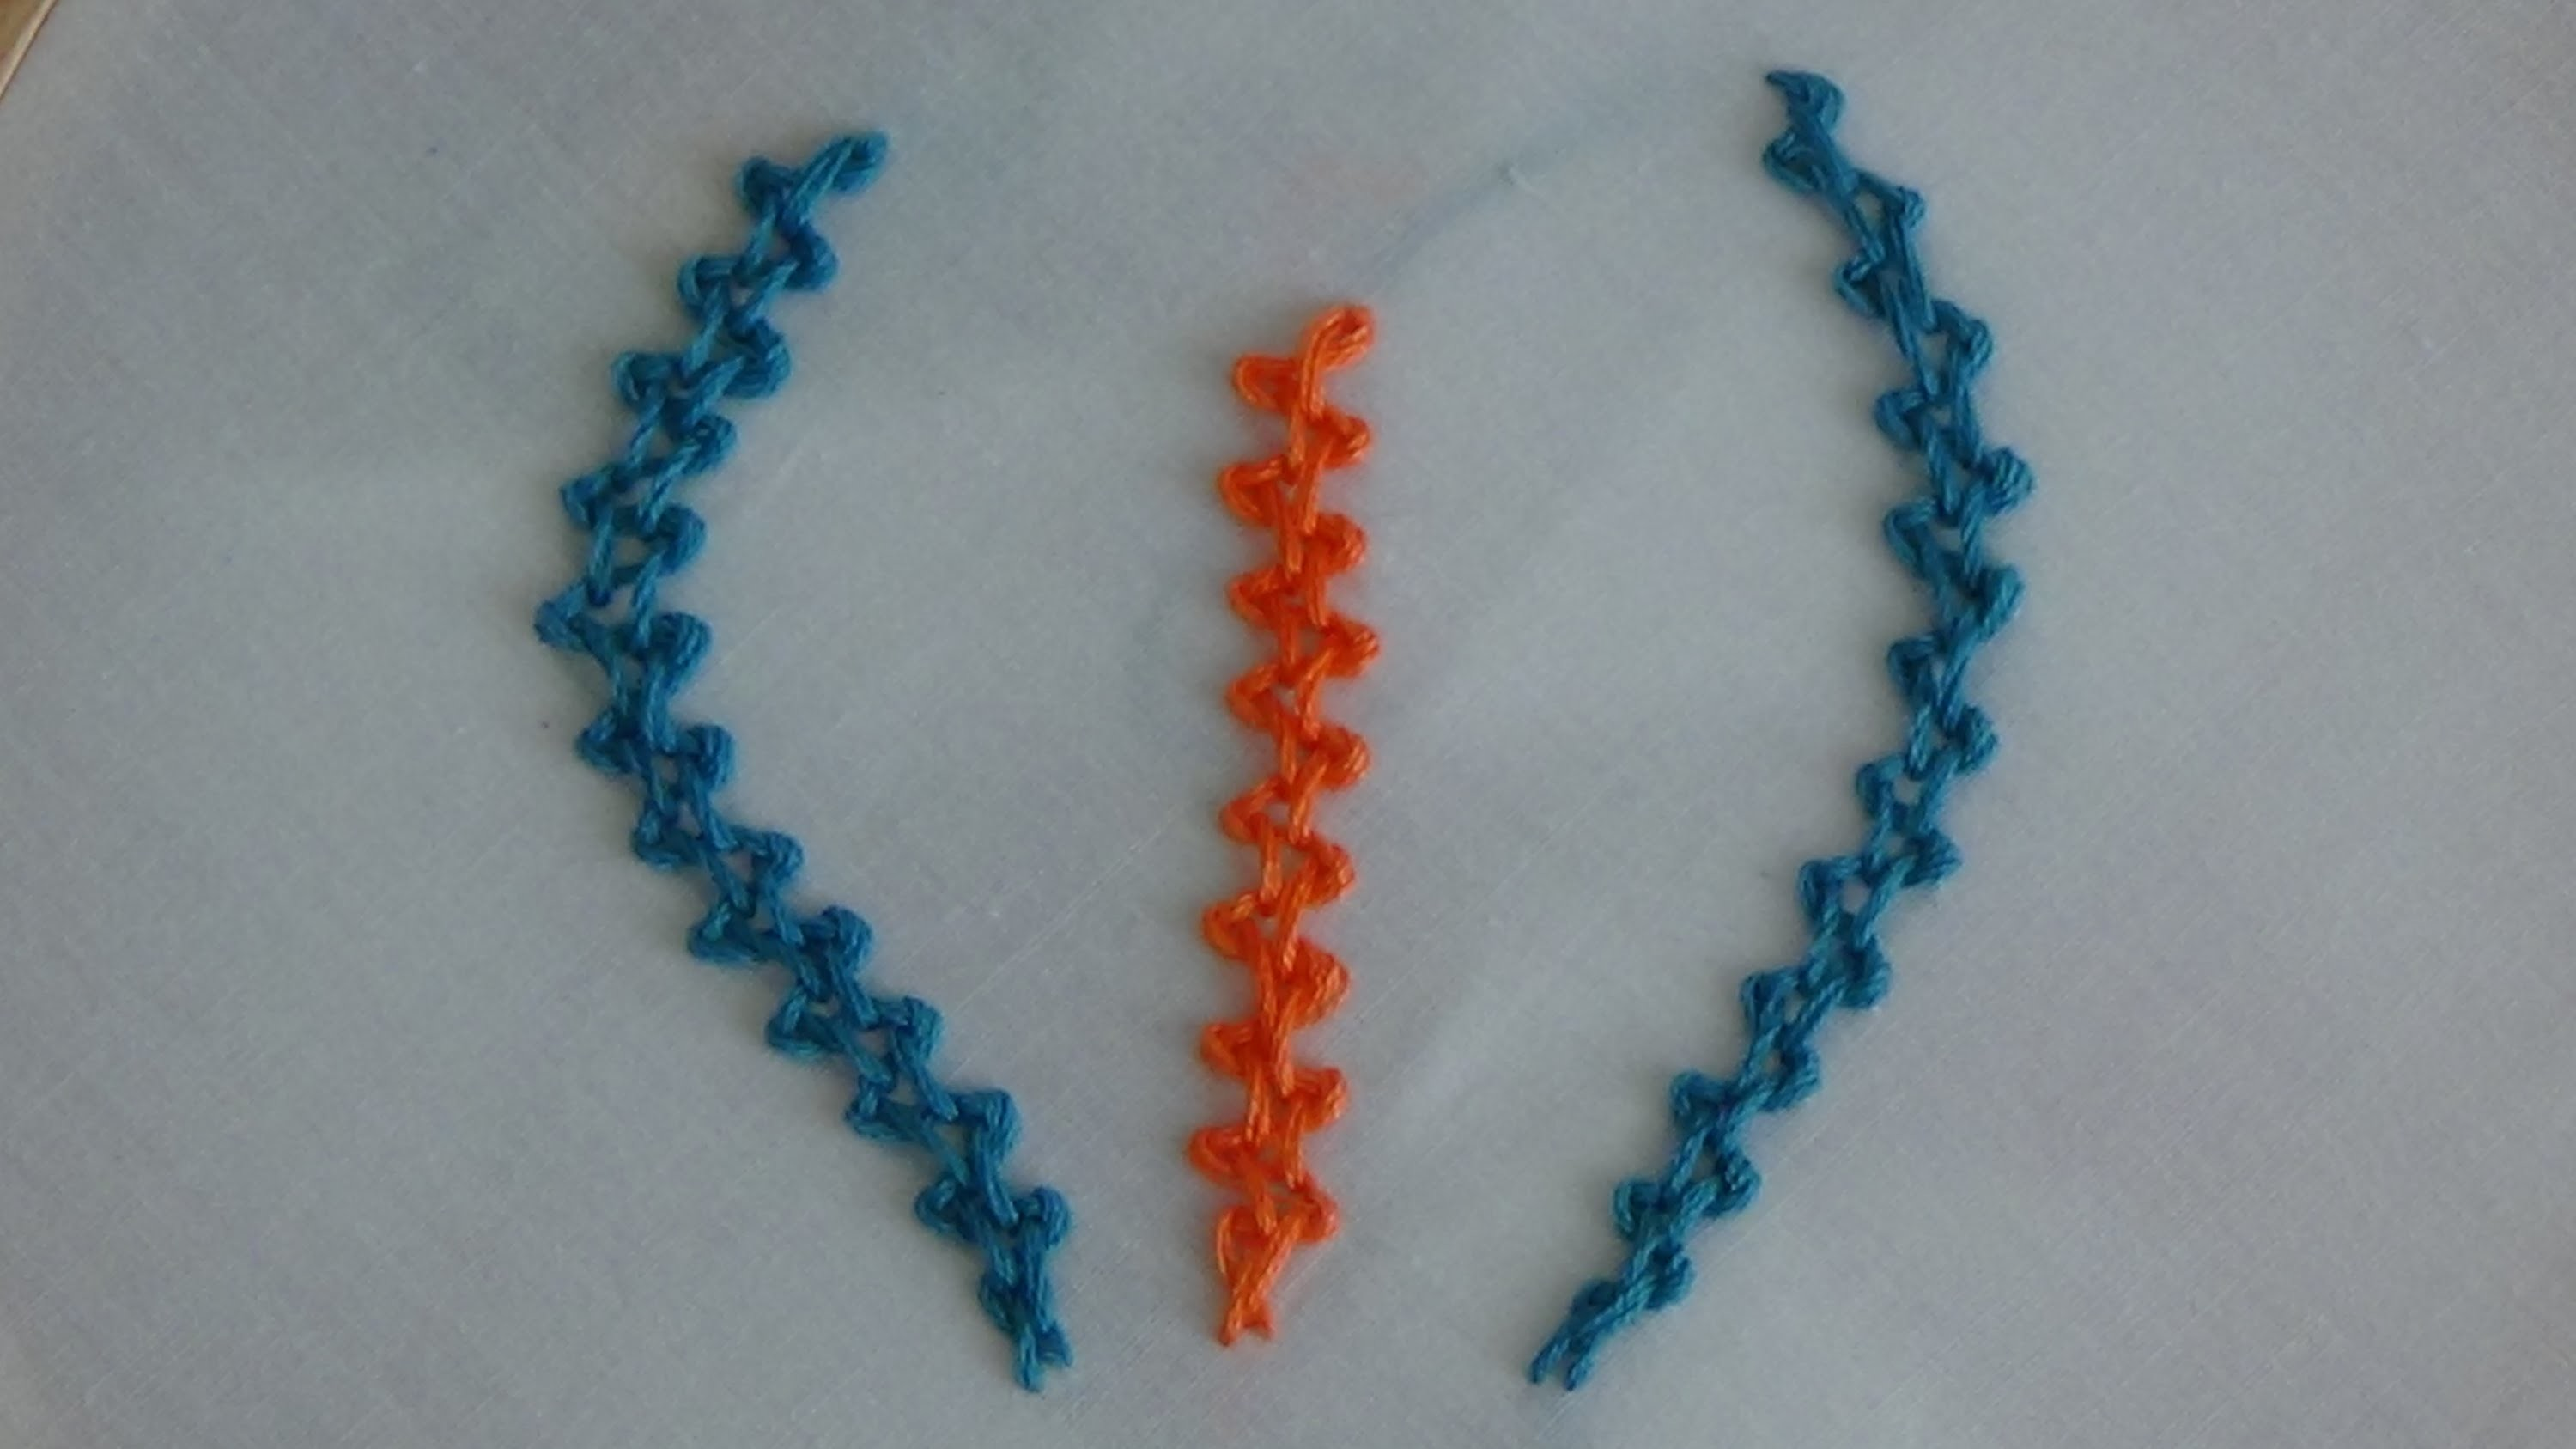 Hand Embroidery: Braid Stitch